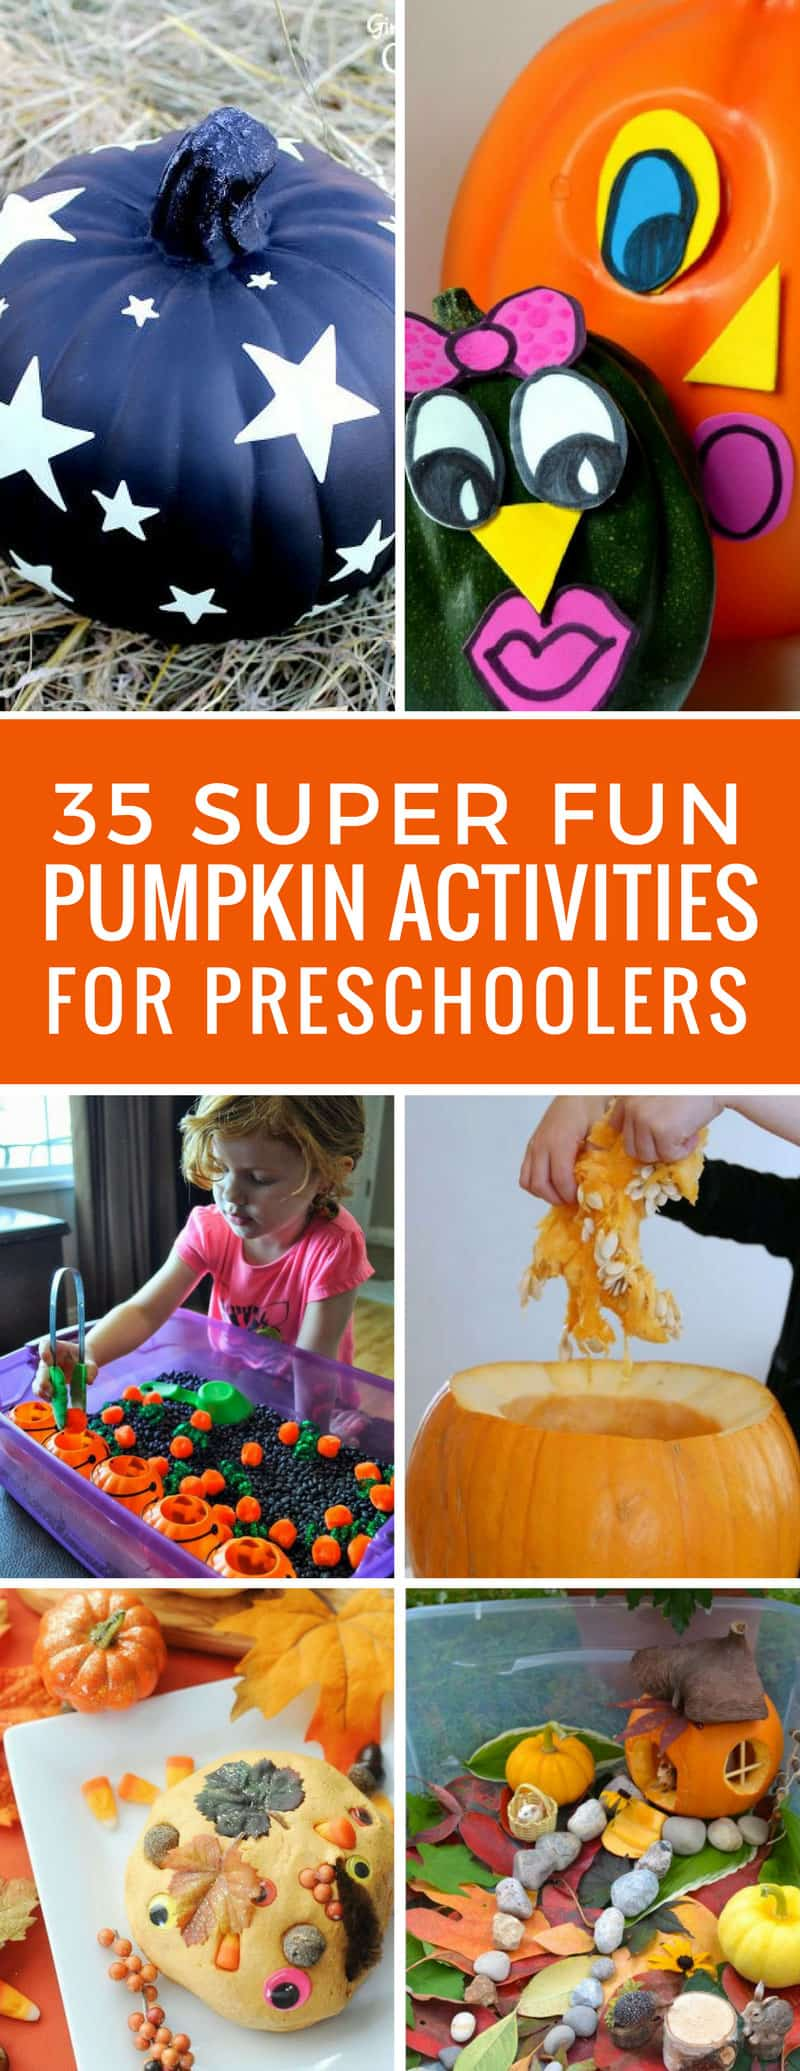 Loving these pumpkin activities for preschoolers - they're perfect for our Fall homeschool plans! Thanks for sharing!